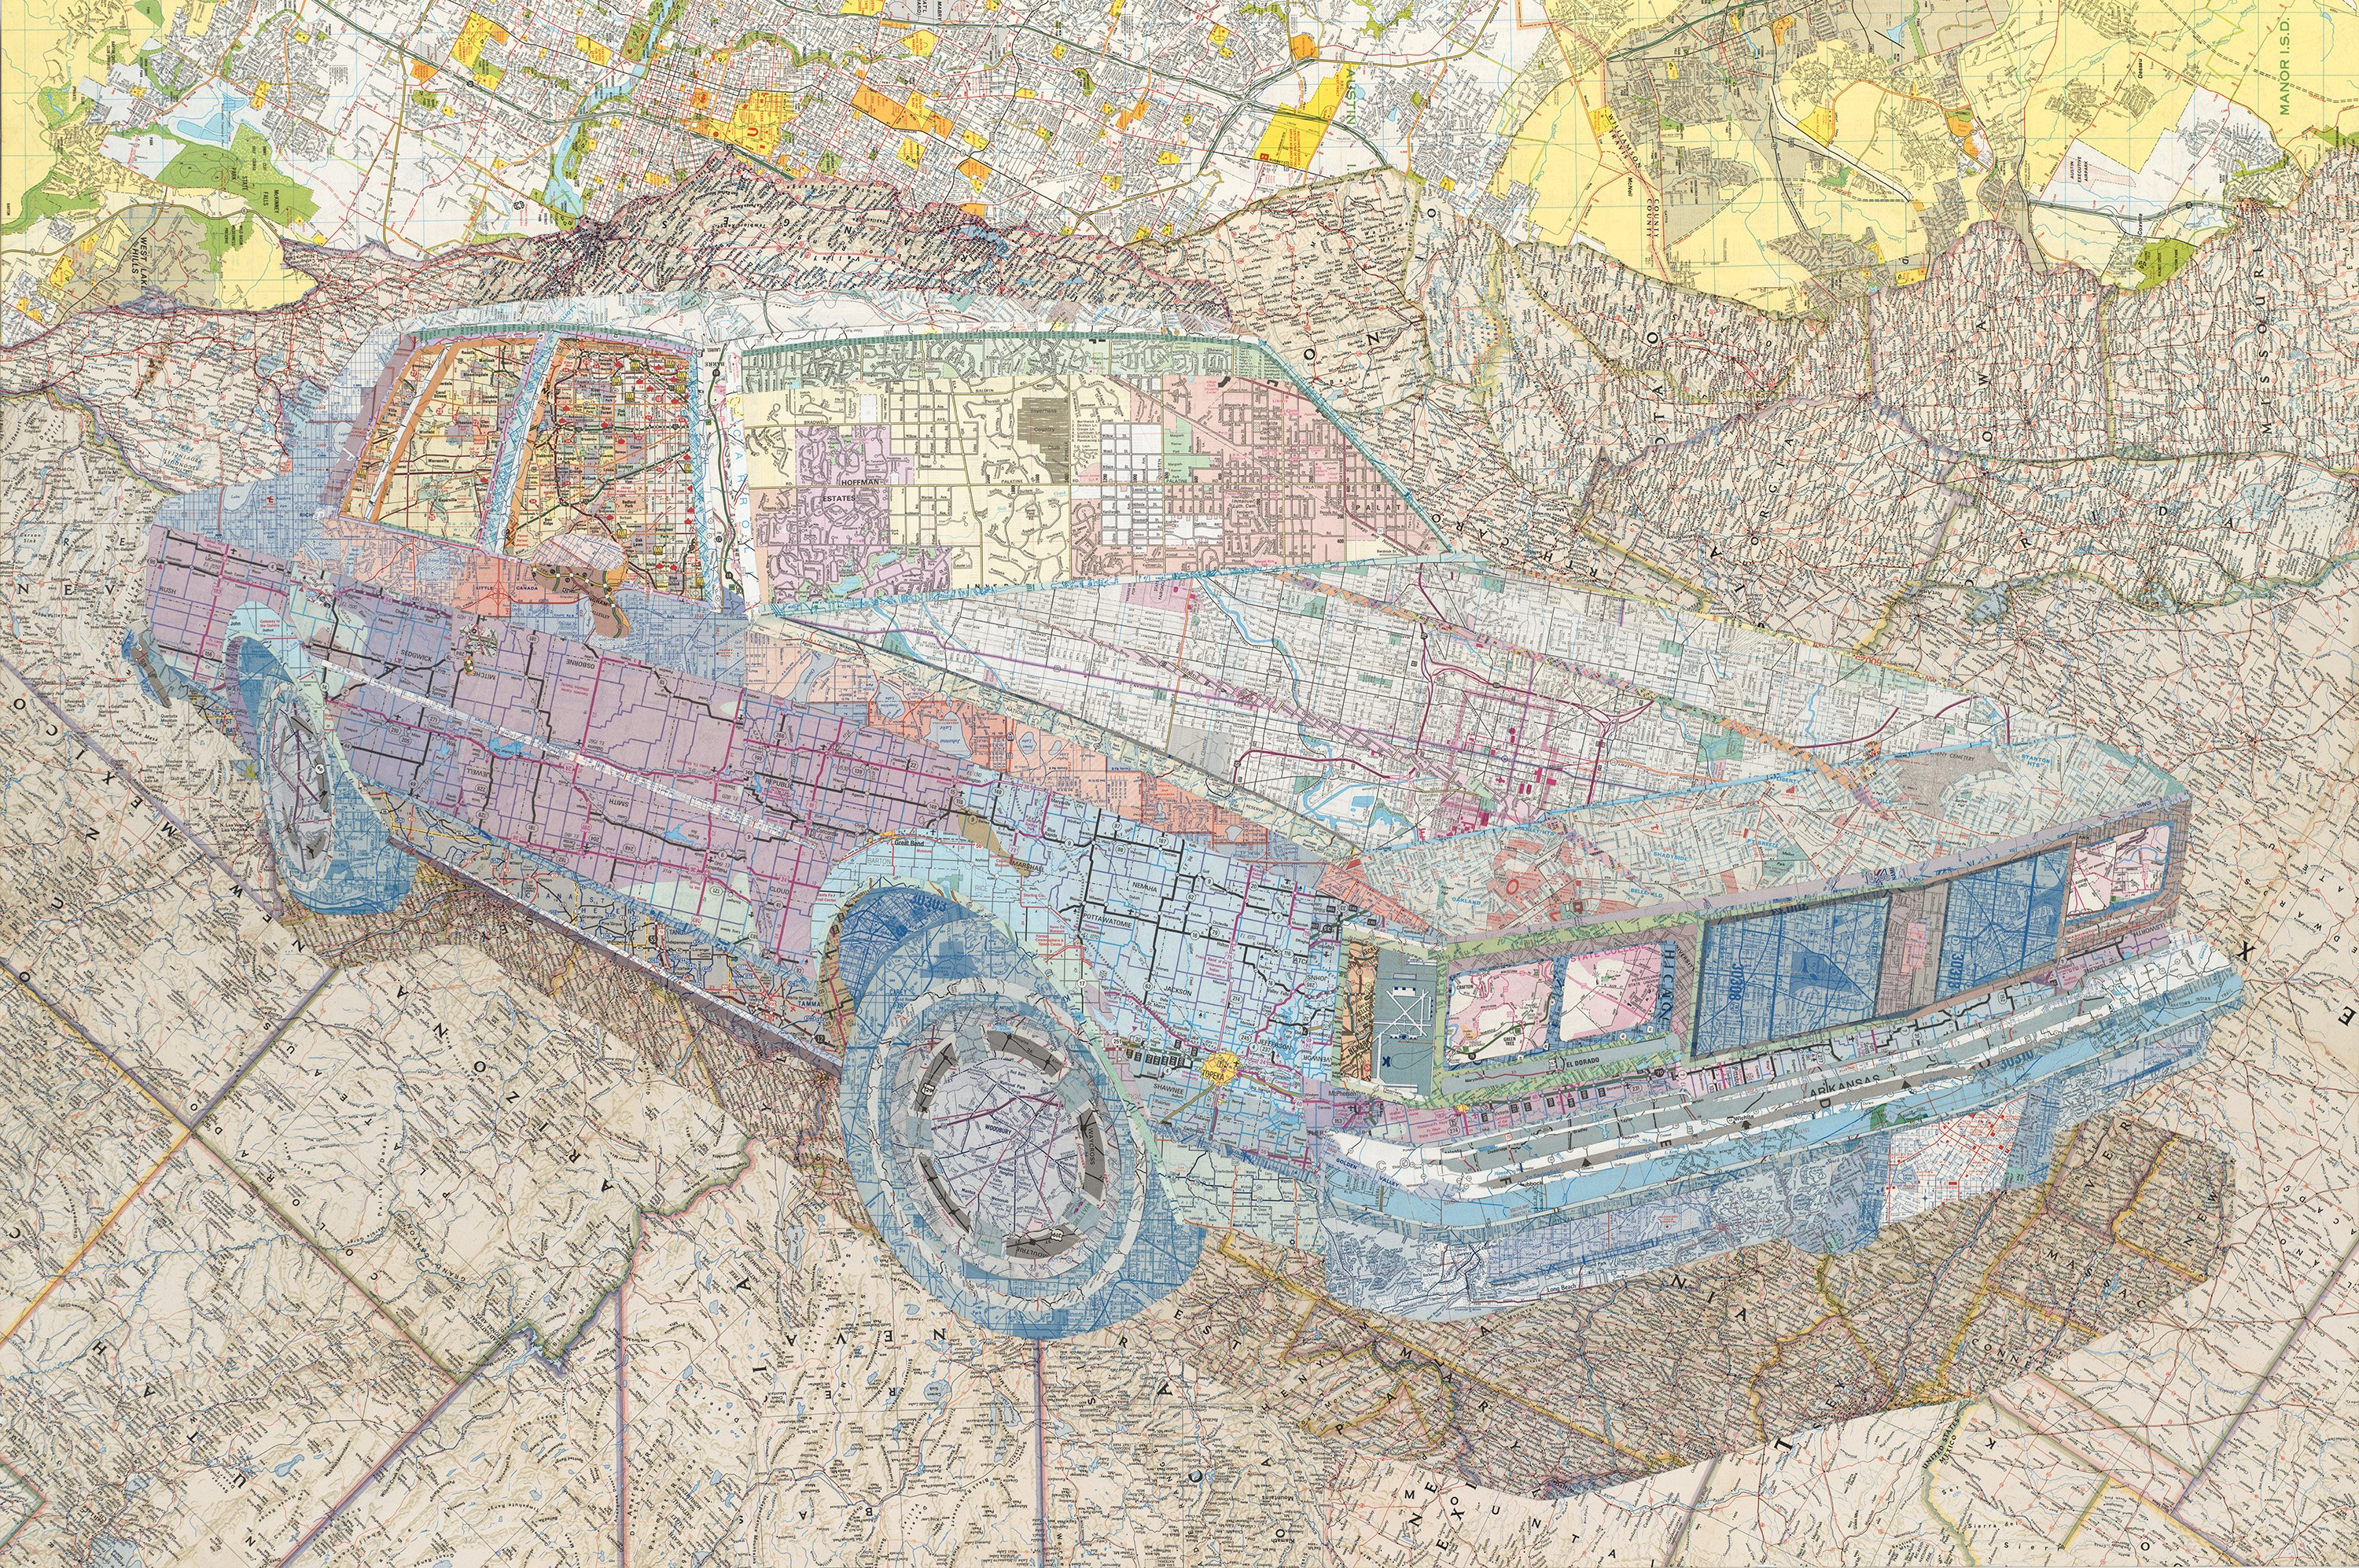 """""""Old's '84"""" by Matthew Cusick, 30"""" x 45"""" Inlaid maps on panel, 2014, Mud Season Review"""